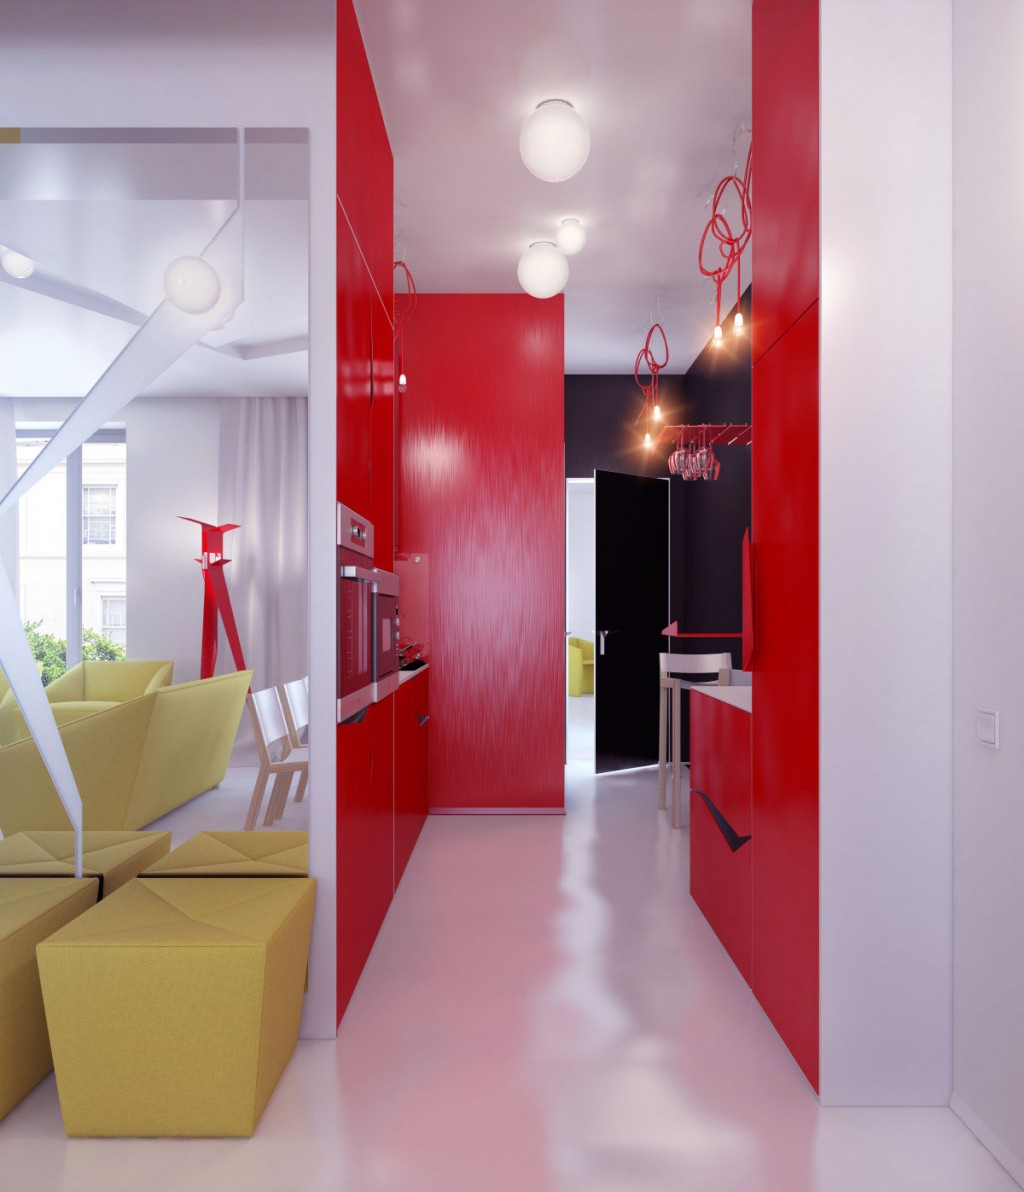 Bold Idea Cheap Interior Design Ideas For Apartments Great: Modern Colorful Hall Way Small Apartment Design